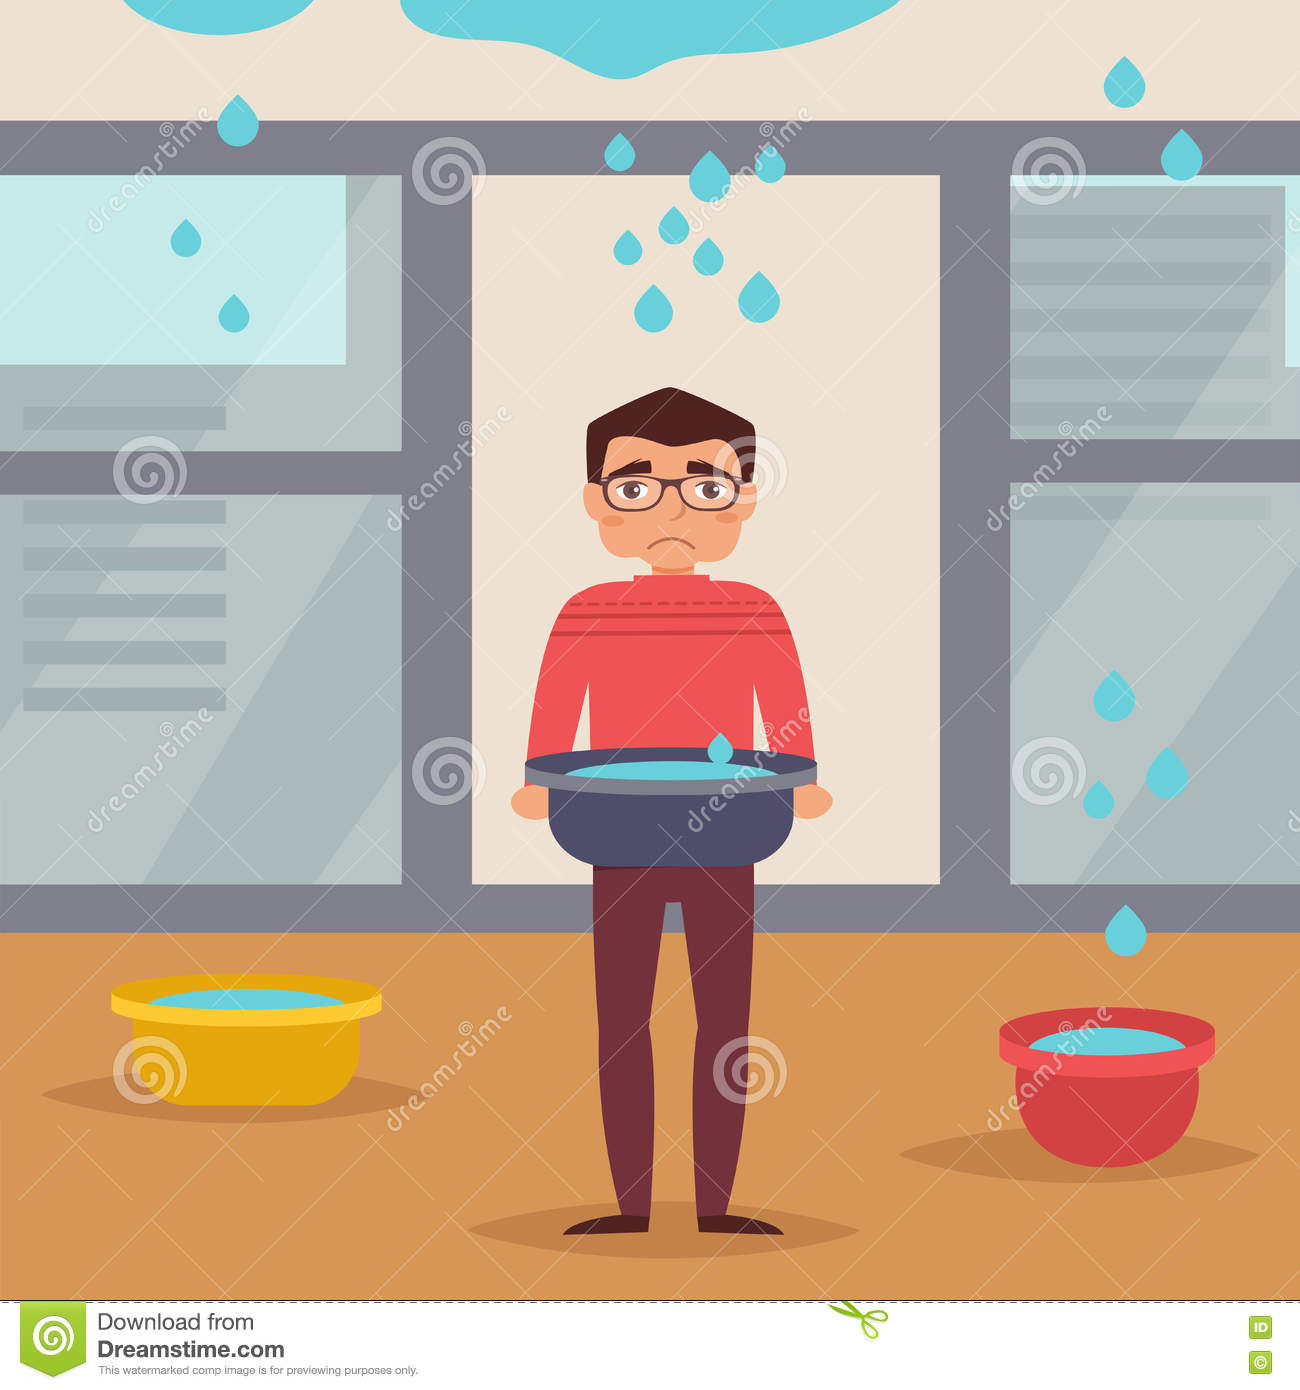 Water Leak From Roof leaking roof. man stands stock vector - image: 78197958